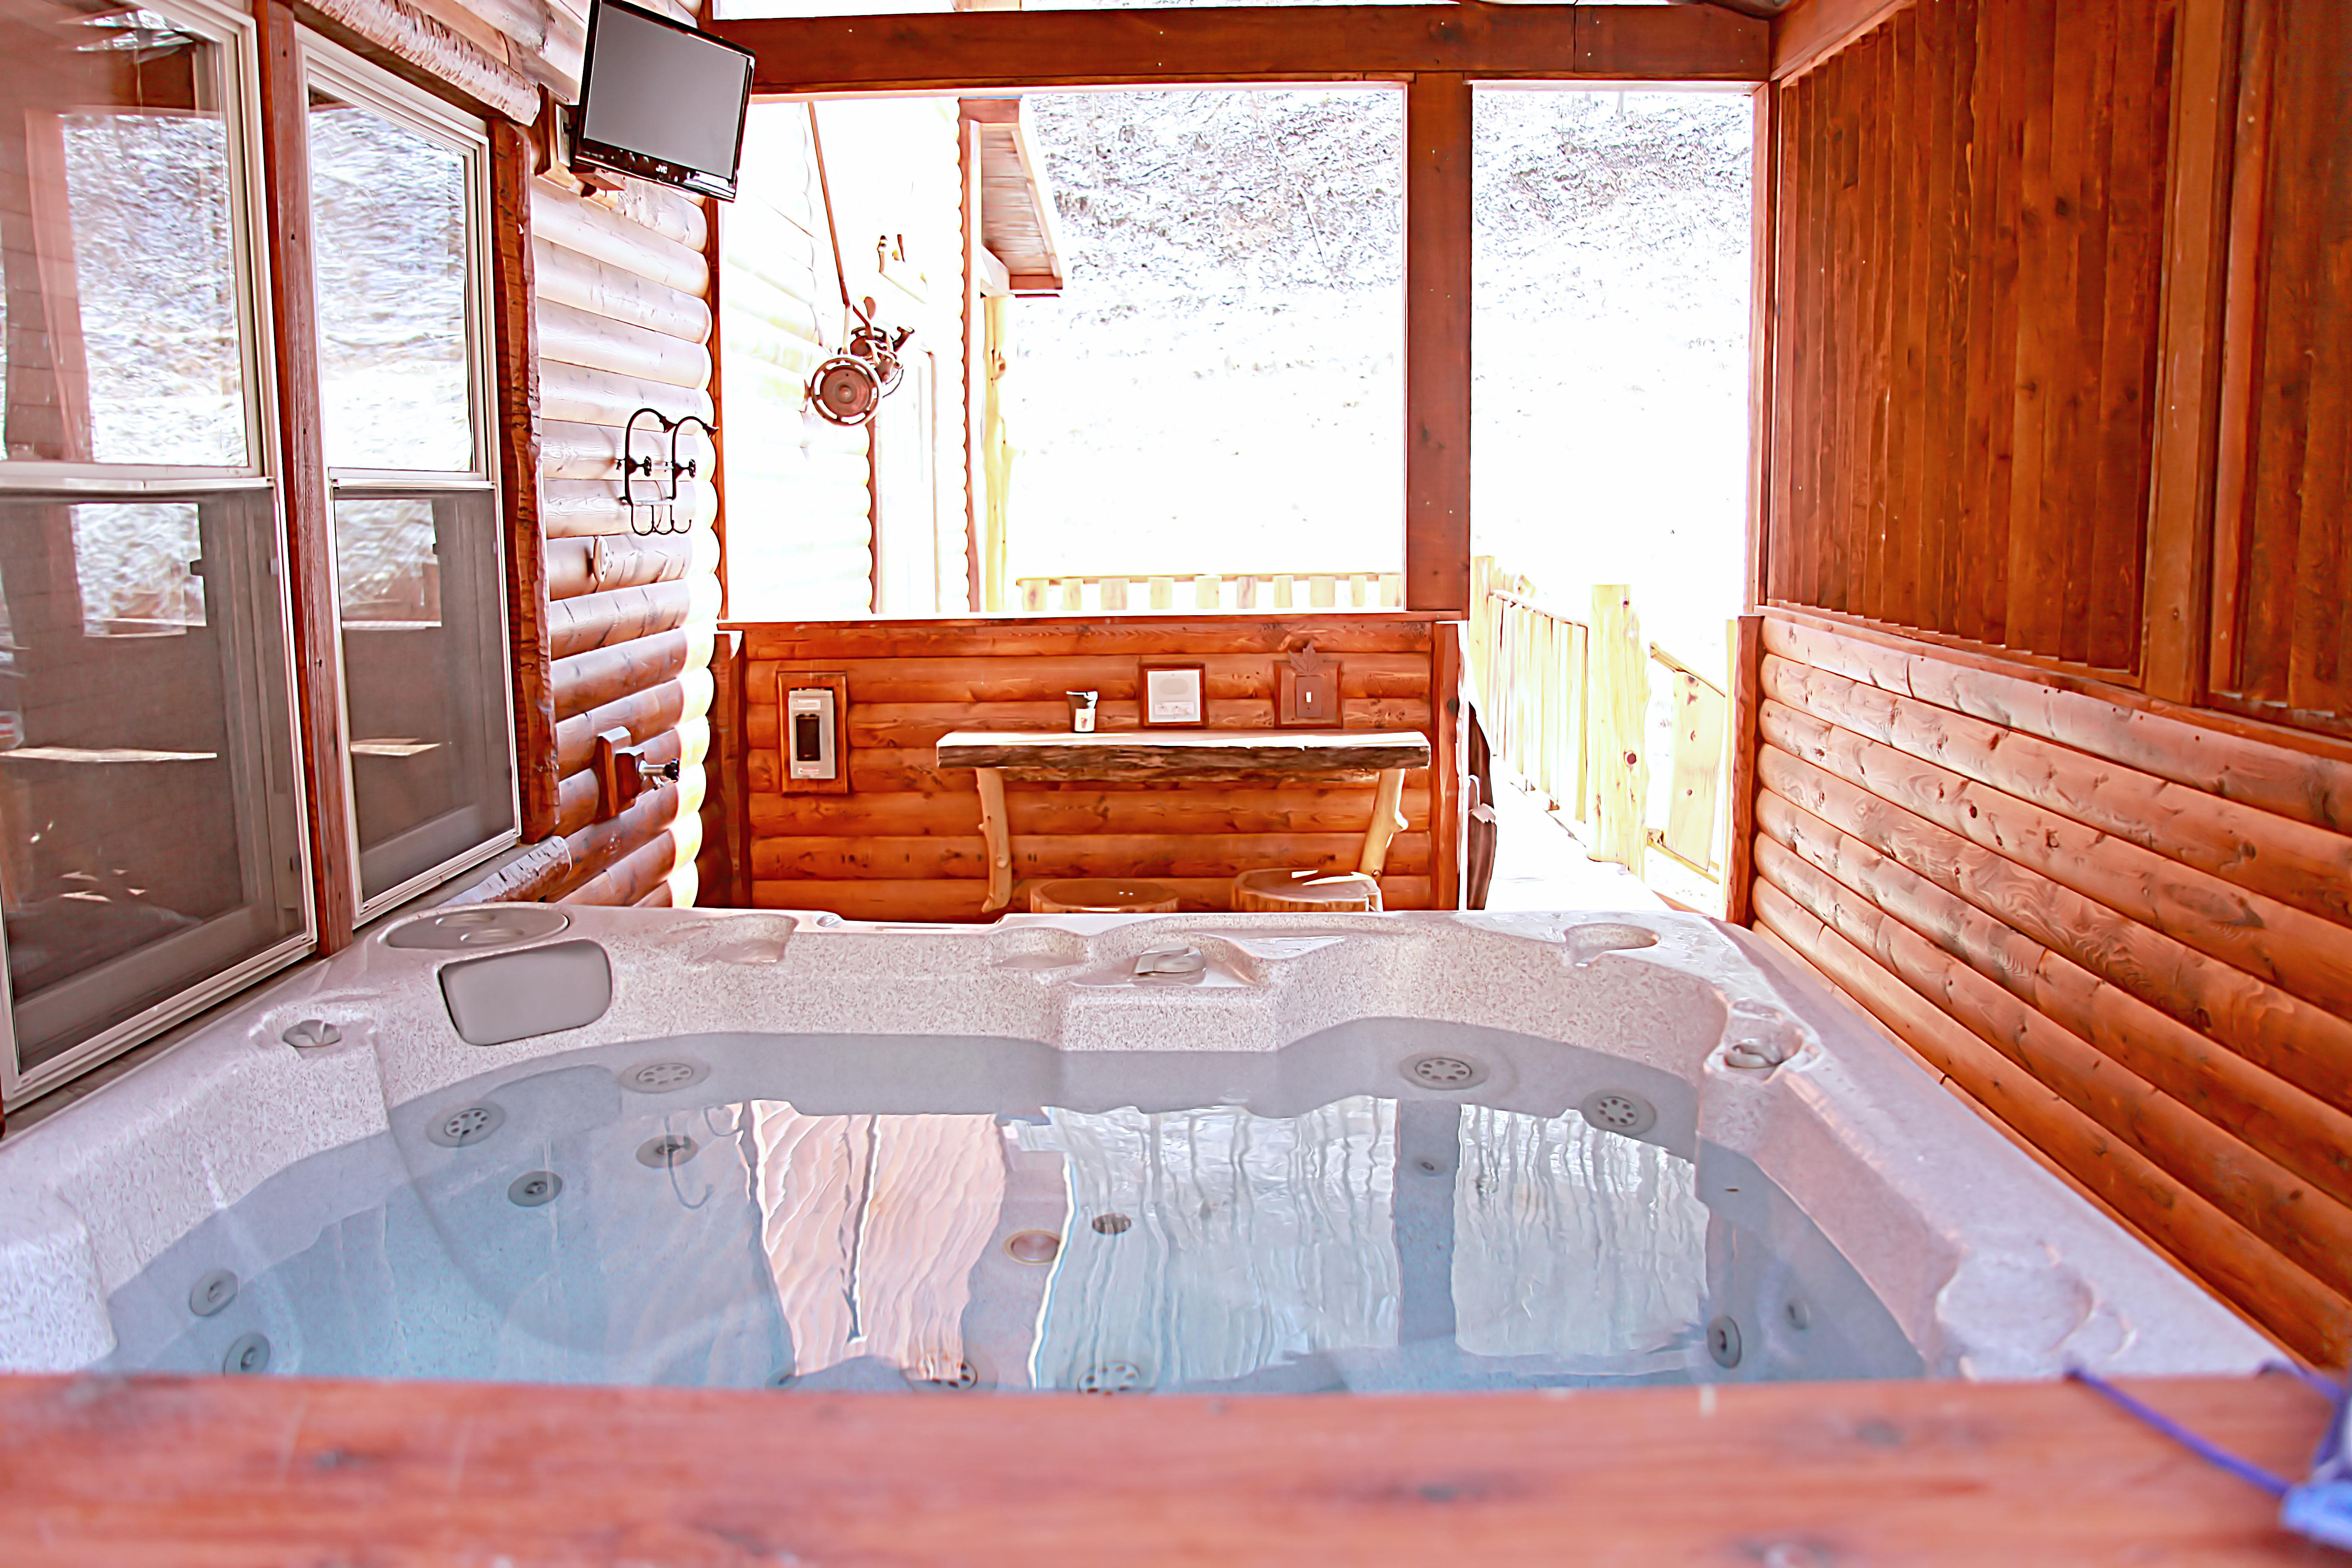 wv almost n it property ruff bearly rentals cabin hot tub heaven with cabins details in